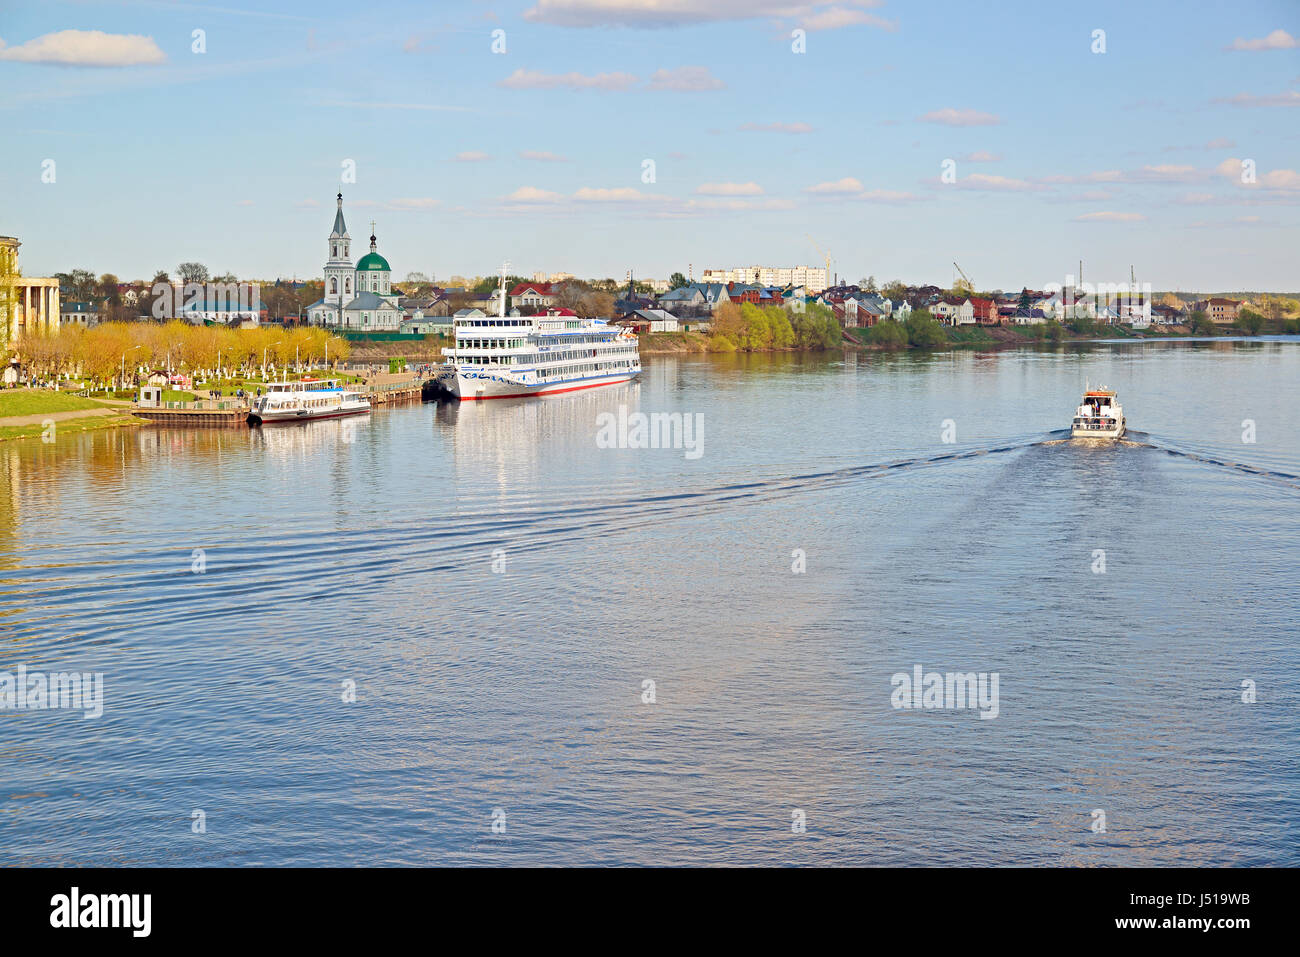 Mans use of the Volga River: navigation, fishing and much more